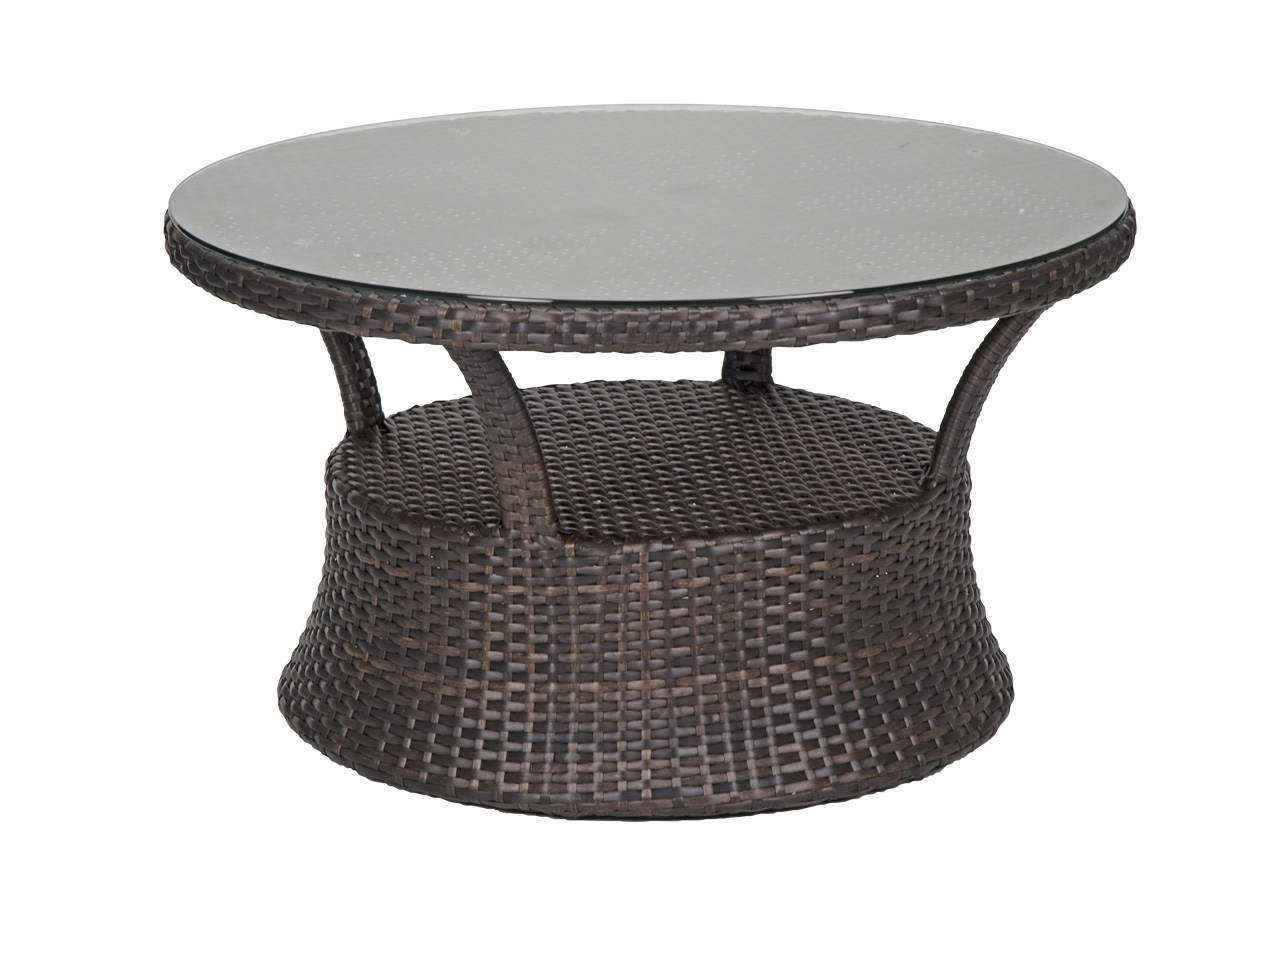 coffee and side tables fortunoff backyard wickr small accent furniture san lucas round aluminum woven resin wicker glass top conversation table modern decor elegant floor lamps